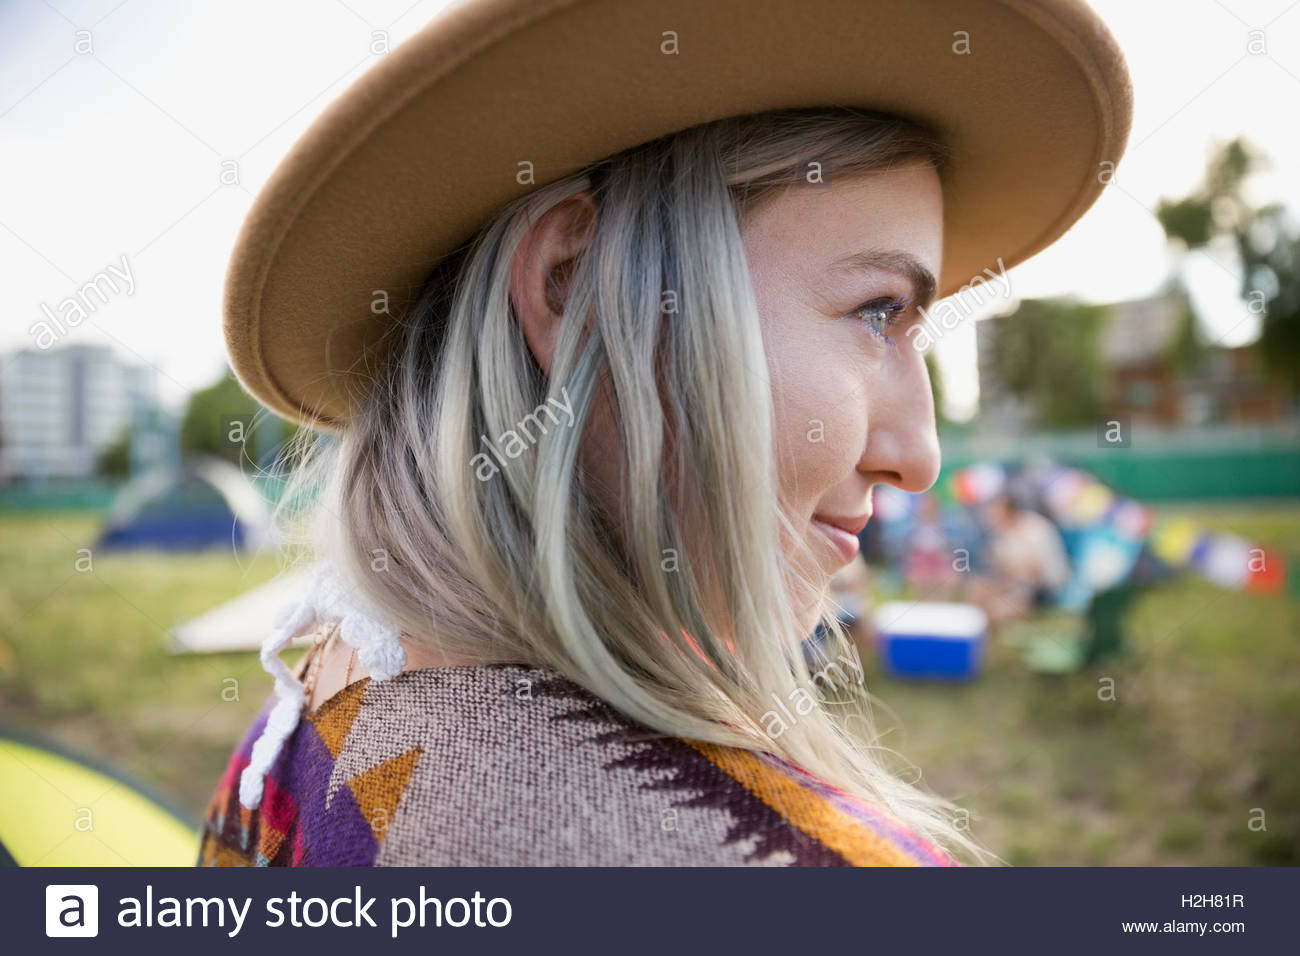 Close up portrait young woman with chalk dyed hair wearing hat looking away at summer music festival campsite - Stock Image